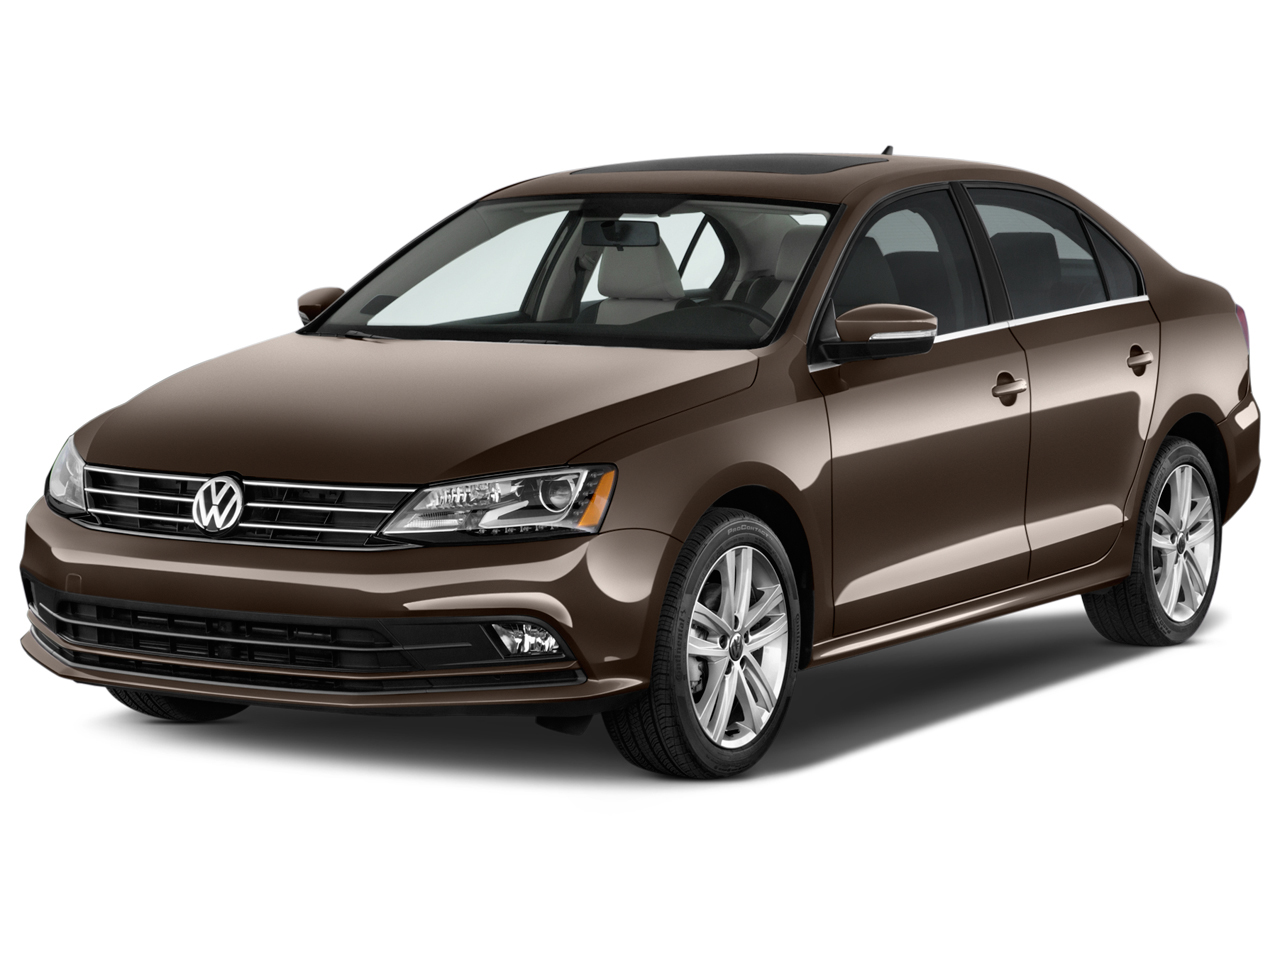 volkswagen jetta sedan vw review ratings specs prices    car connection